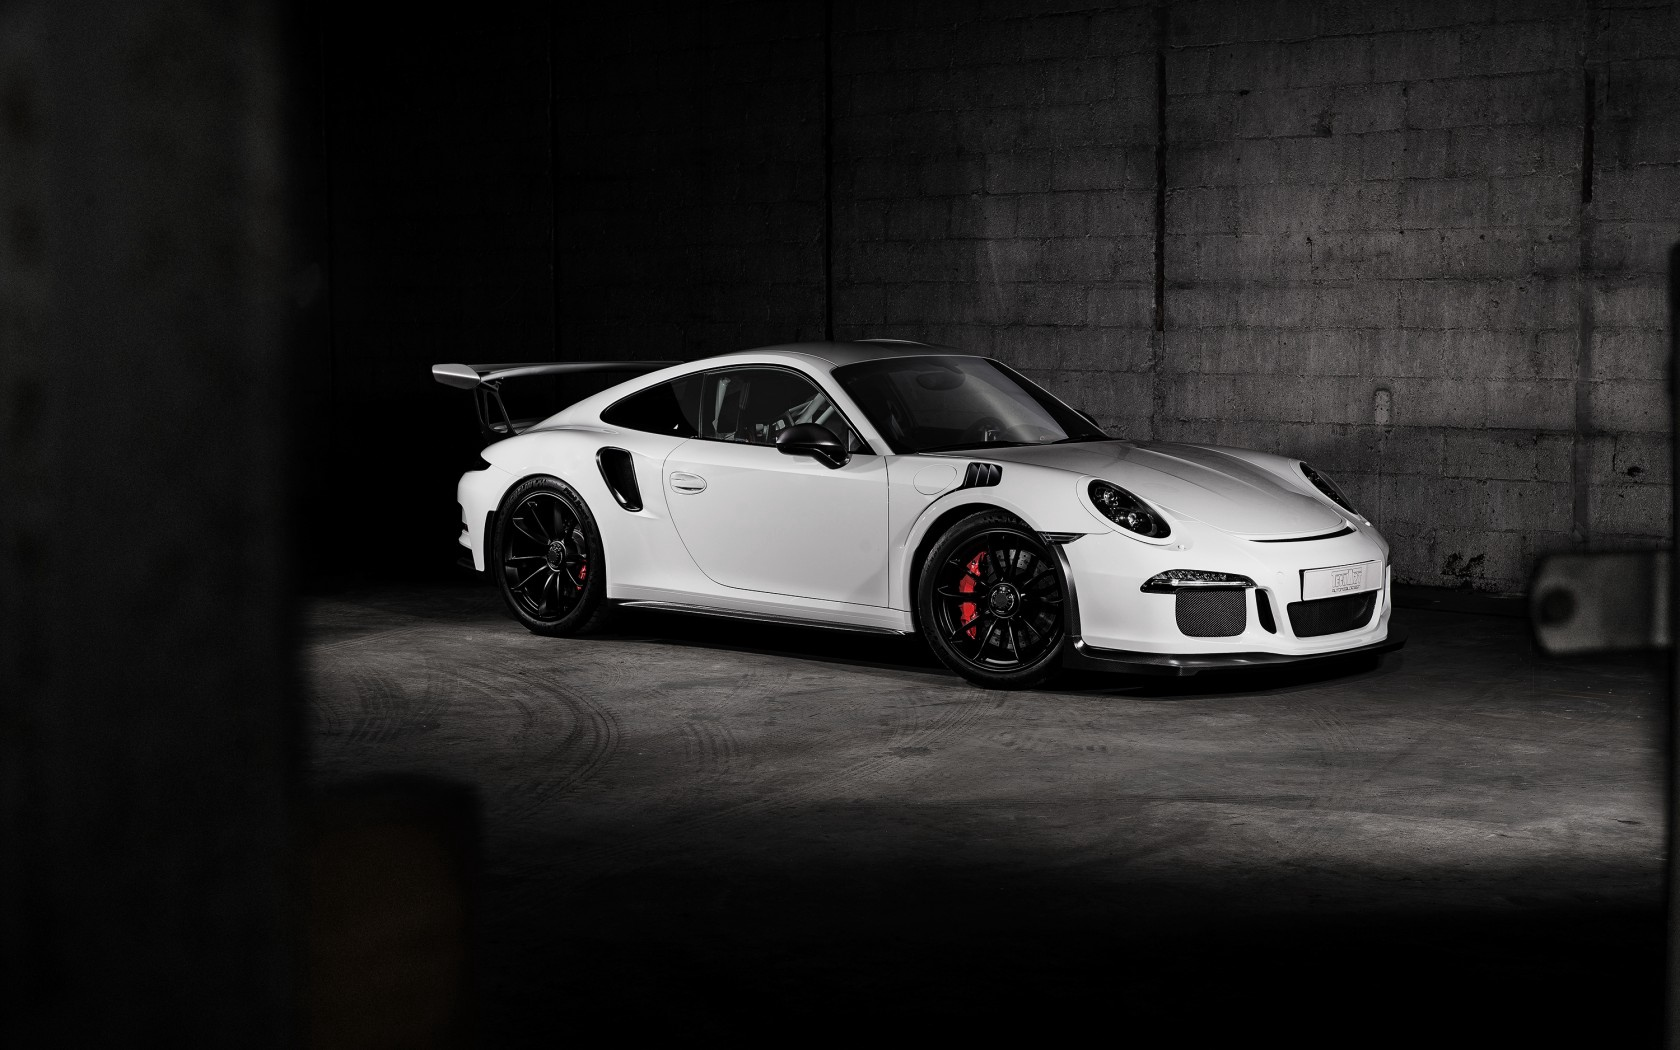 Download wallpaper 1680x1050 porsche 911 gt3 side view white 1680x1050